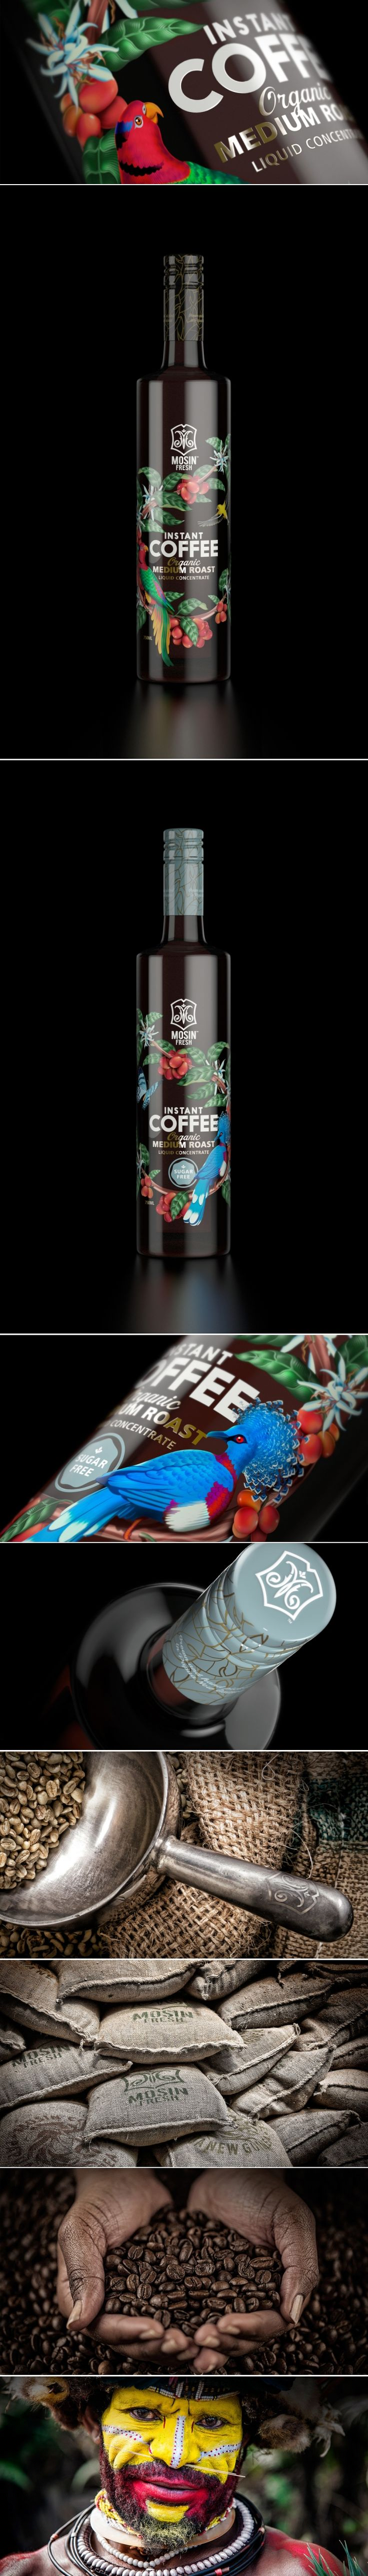 Mosin Fresh Coffee Concentrate — The Dieline | Packaging & Branding Design & Innovation News